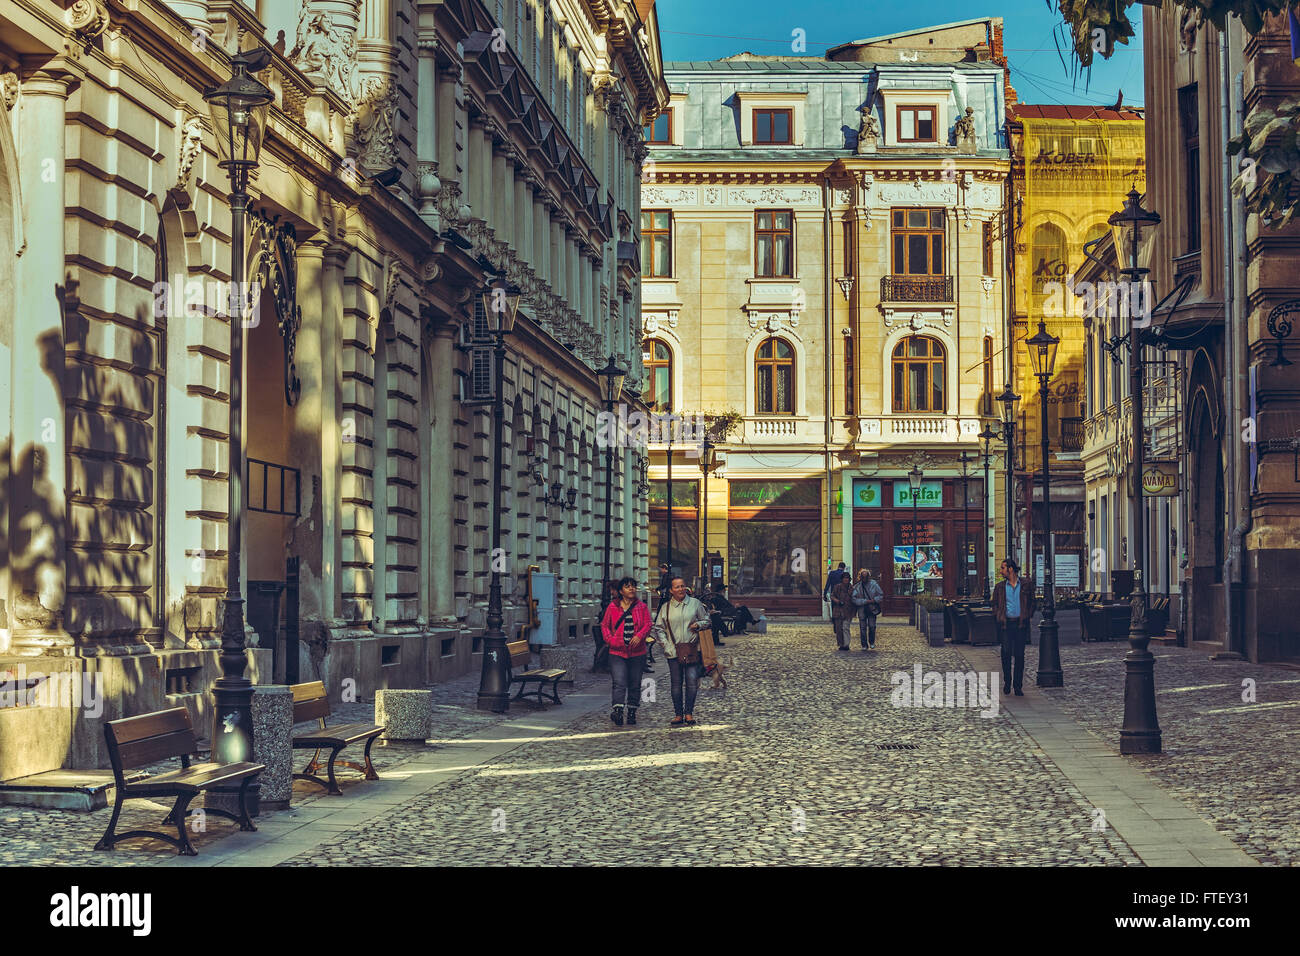 Bucharest, Romania - October 6, 2013: Tourists wander the cobblestone streets of the historic center Lipscani, the - Stock Image